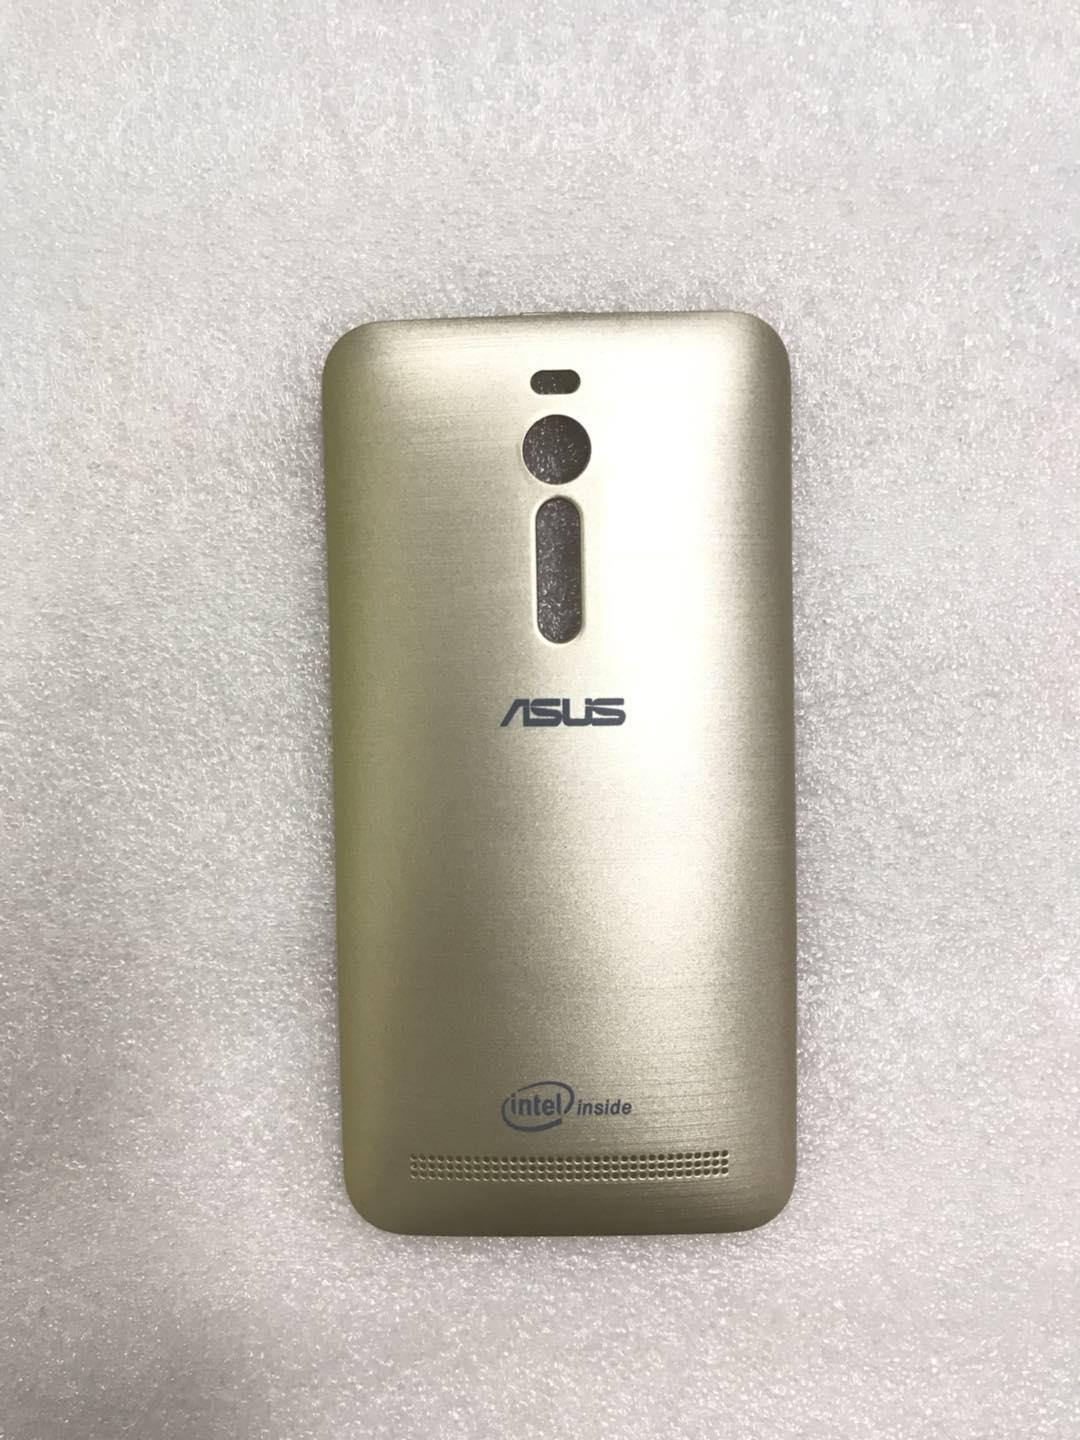 Asus Phone Case Philippines Cover For Sale Prices Apple Iphone 5 32gb White Free Tempered Glass Refurbish Zenfone 2 Ze550ml Ze551ml Z00ad Back Replacement